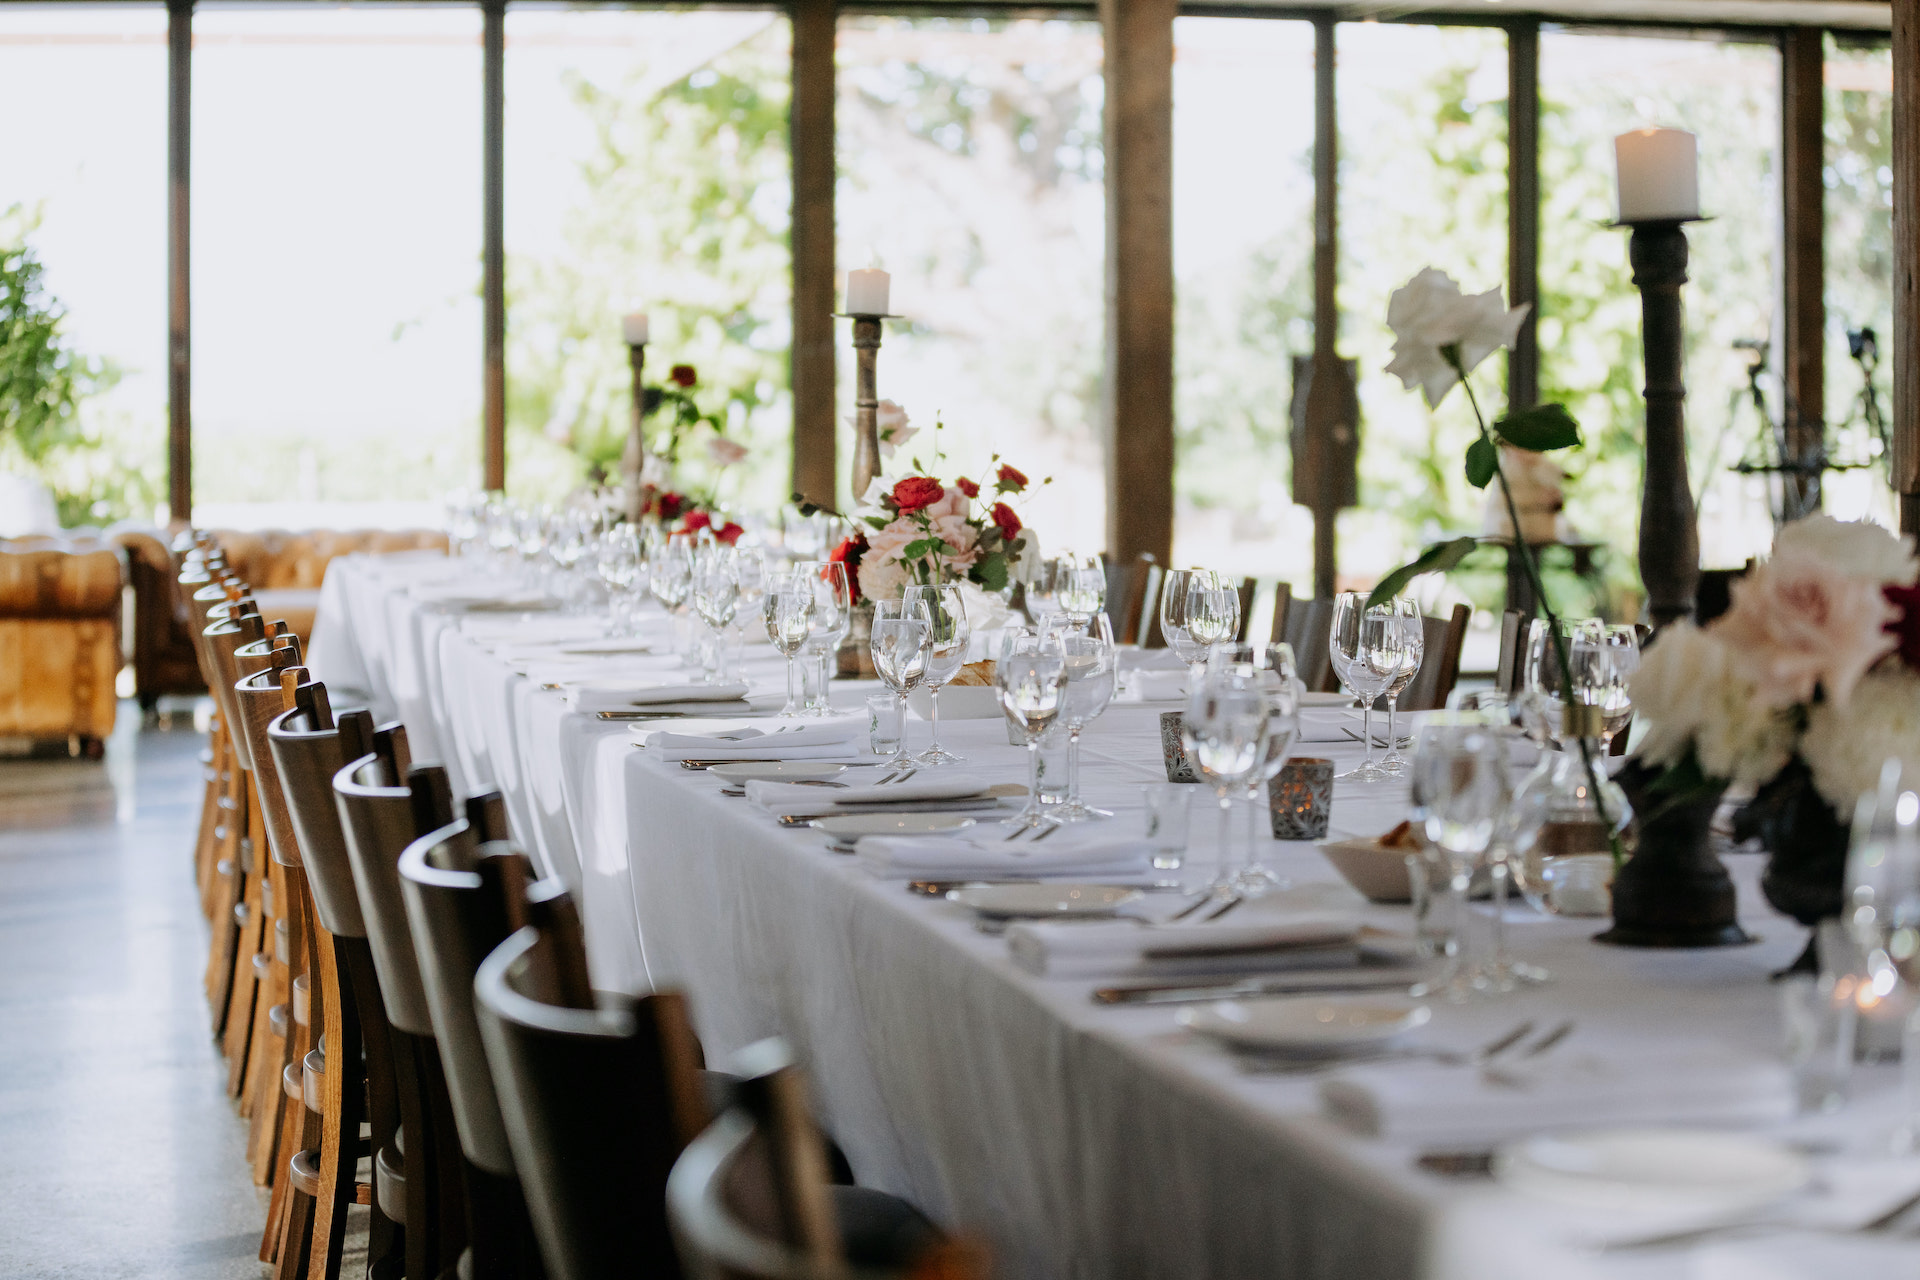 A foam free design wedding with modern wedding tablescape styling for a Stones wedding in the Yarra Valley.